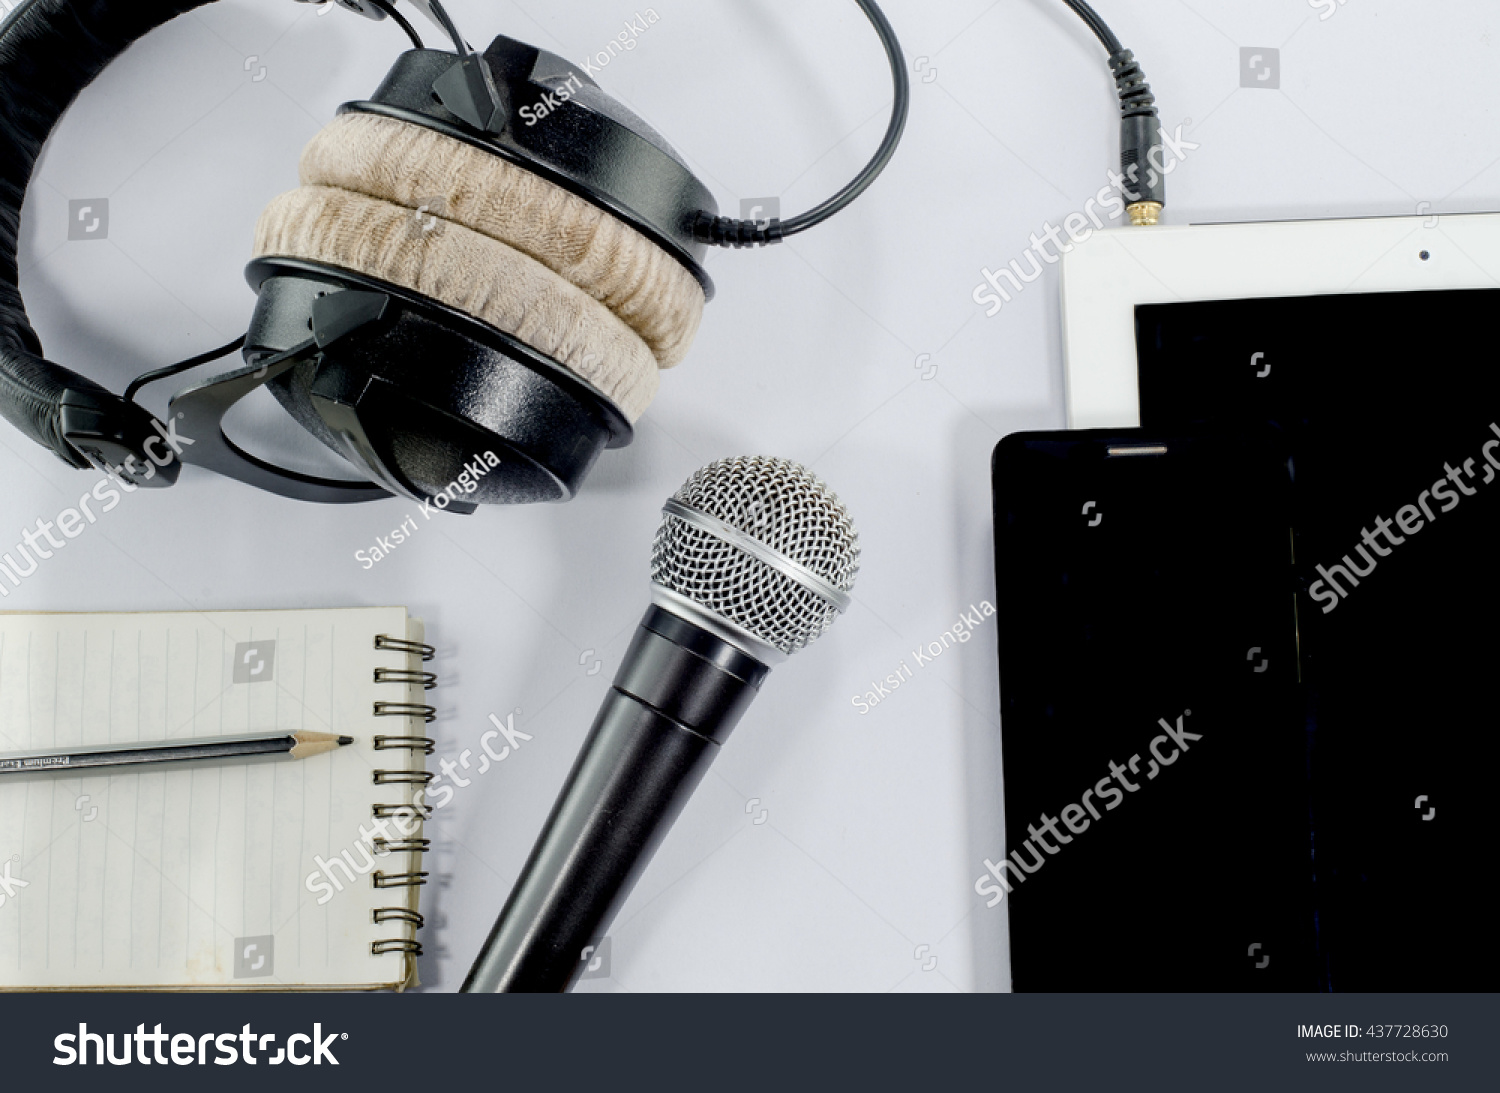 earphone essay Wearing headphones/ earbuds can cause hearing loss the argument essay against headphones some people say that using headphones and earbuds can cause hearing loss.